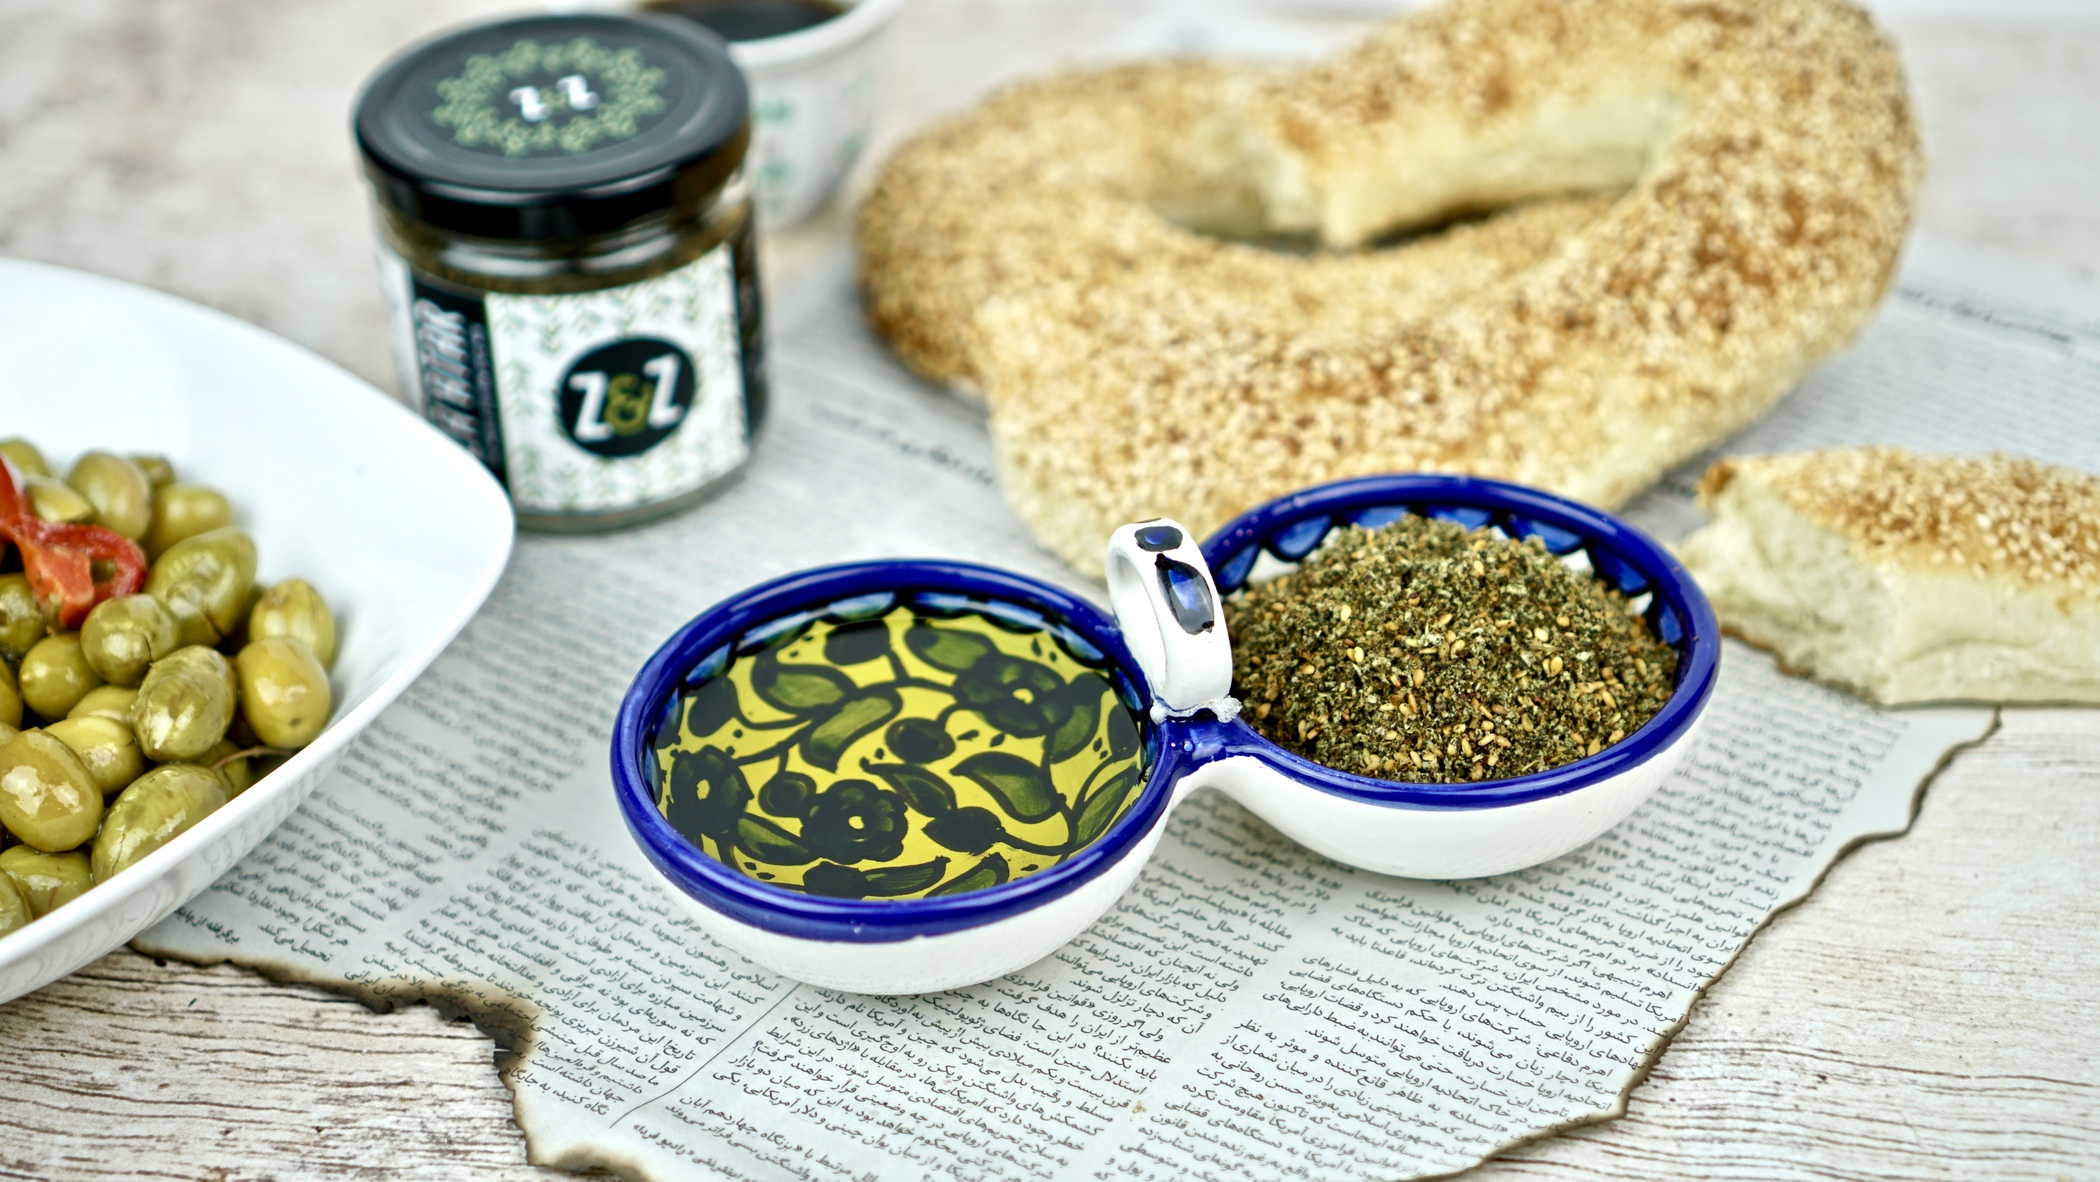 But is za'atar brain food? Well, there's this tantalizing tidbit about carvacrol: At least in animals, it seems to travel from the blood into the brain relatively easily.